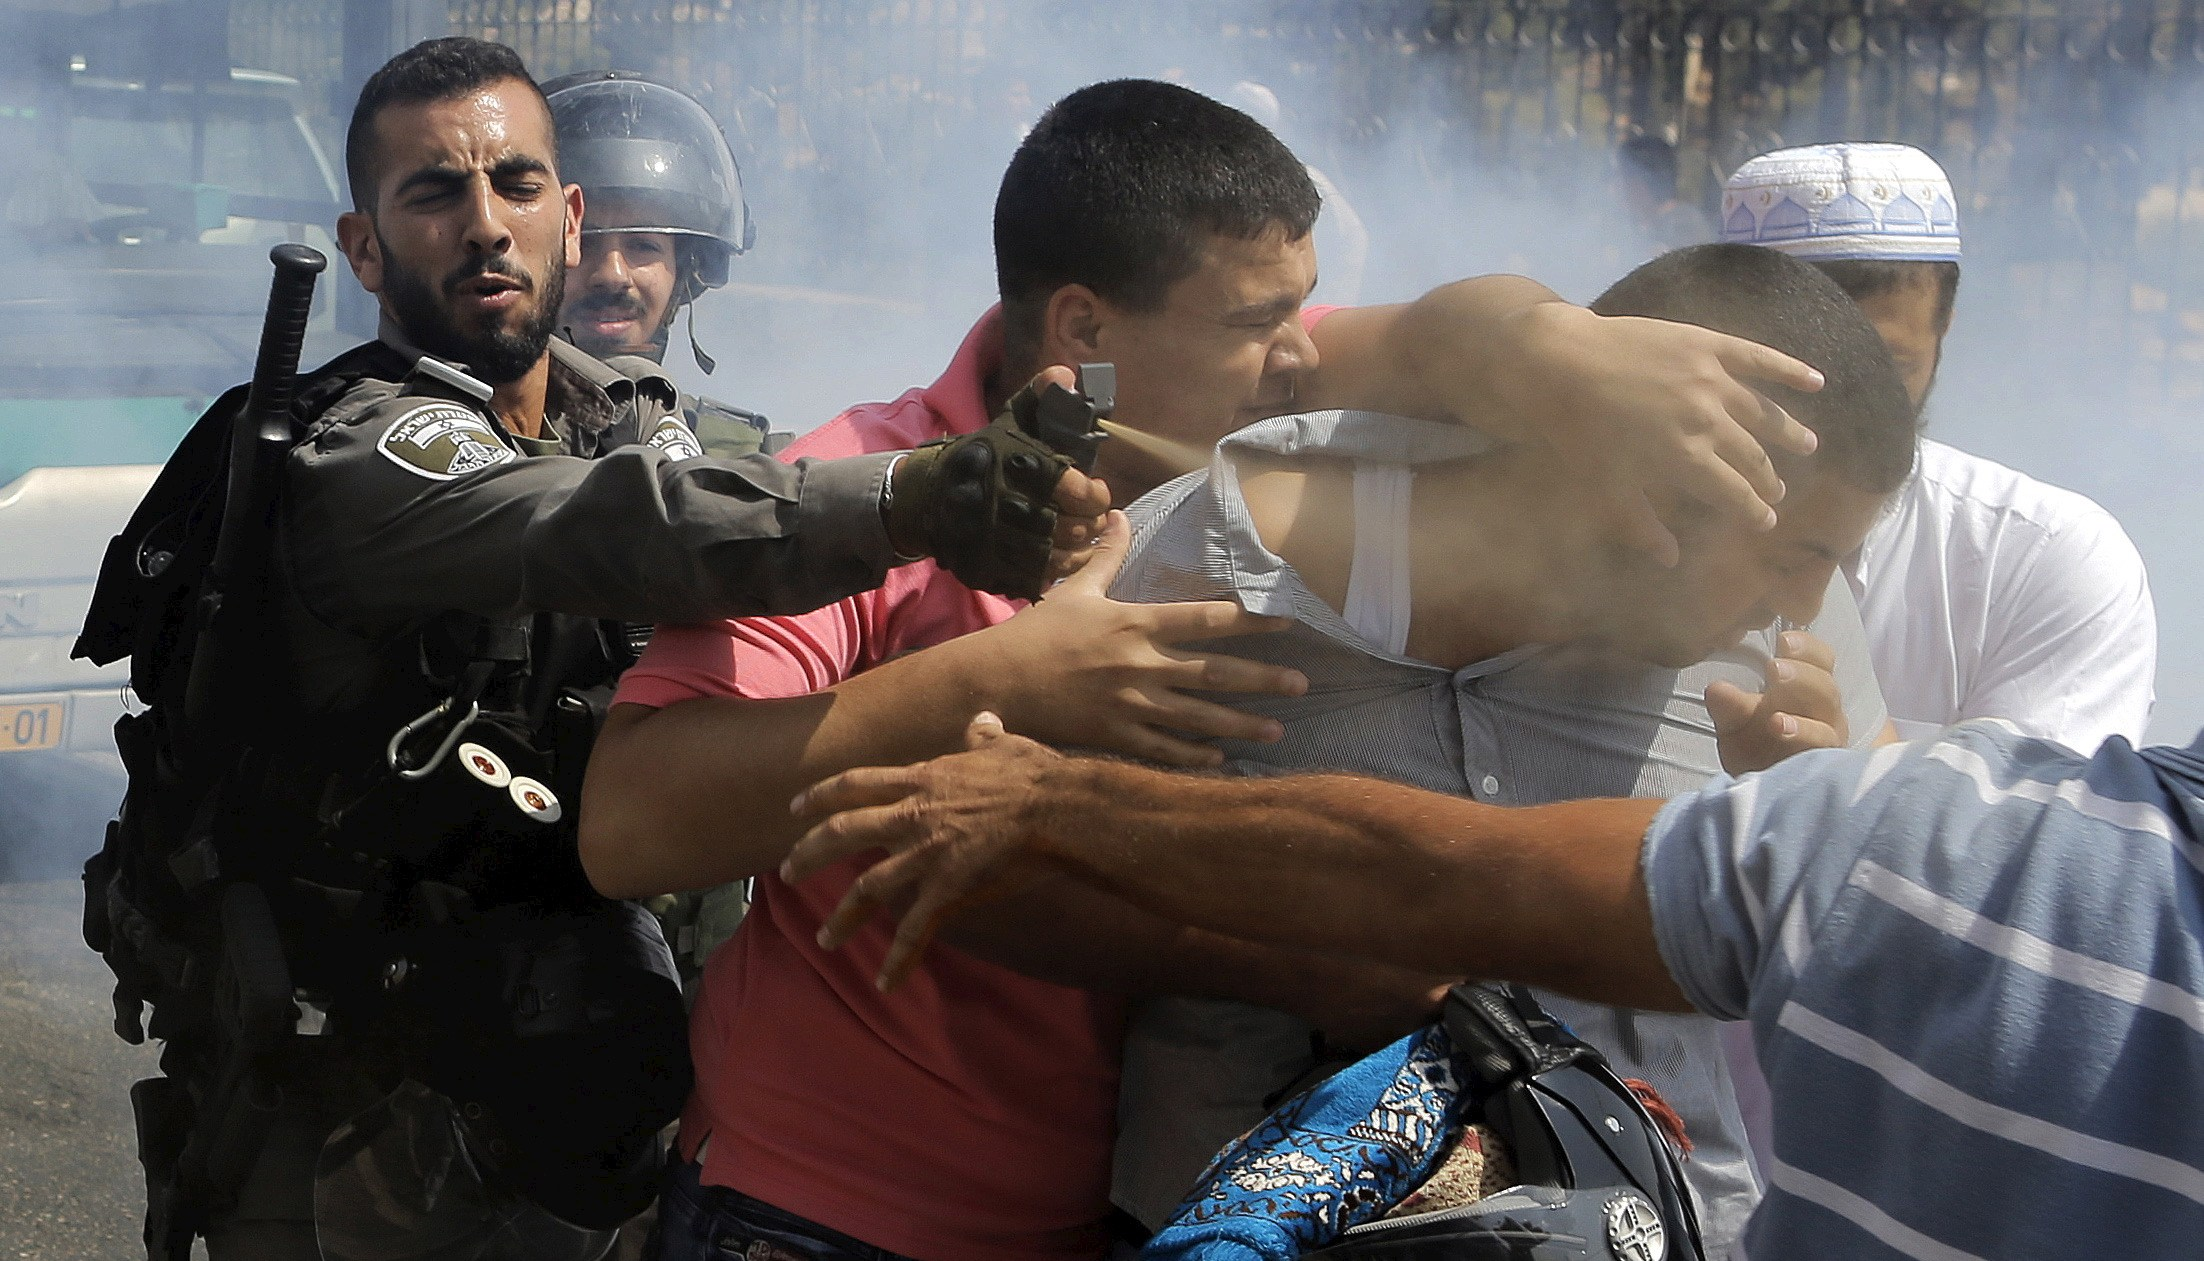 Israeli border policeman uses pepper spray on a Palestinian man during clashes near Arab East Jerusalem